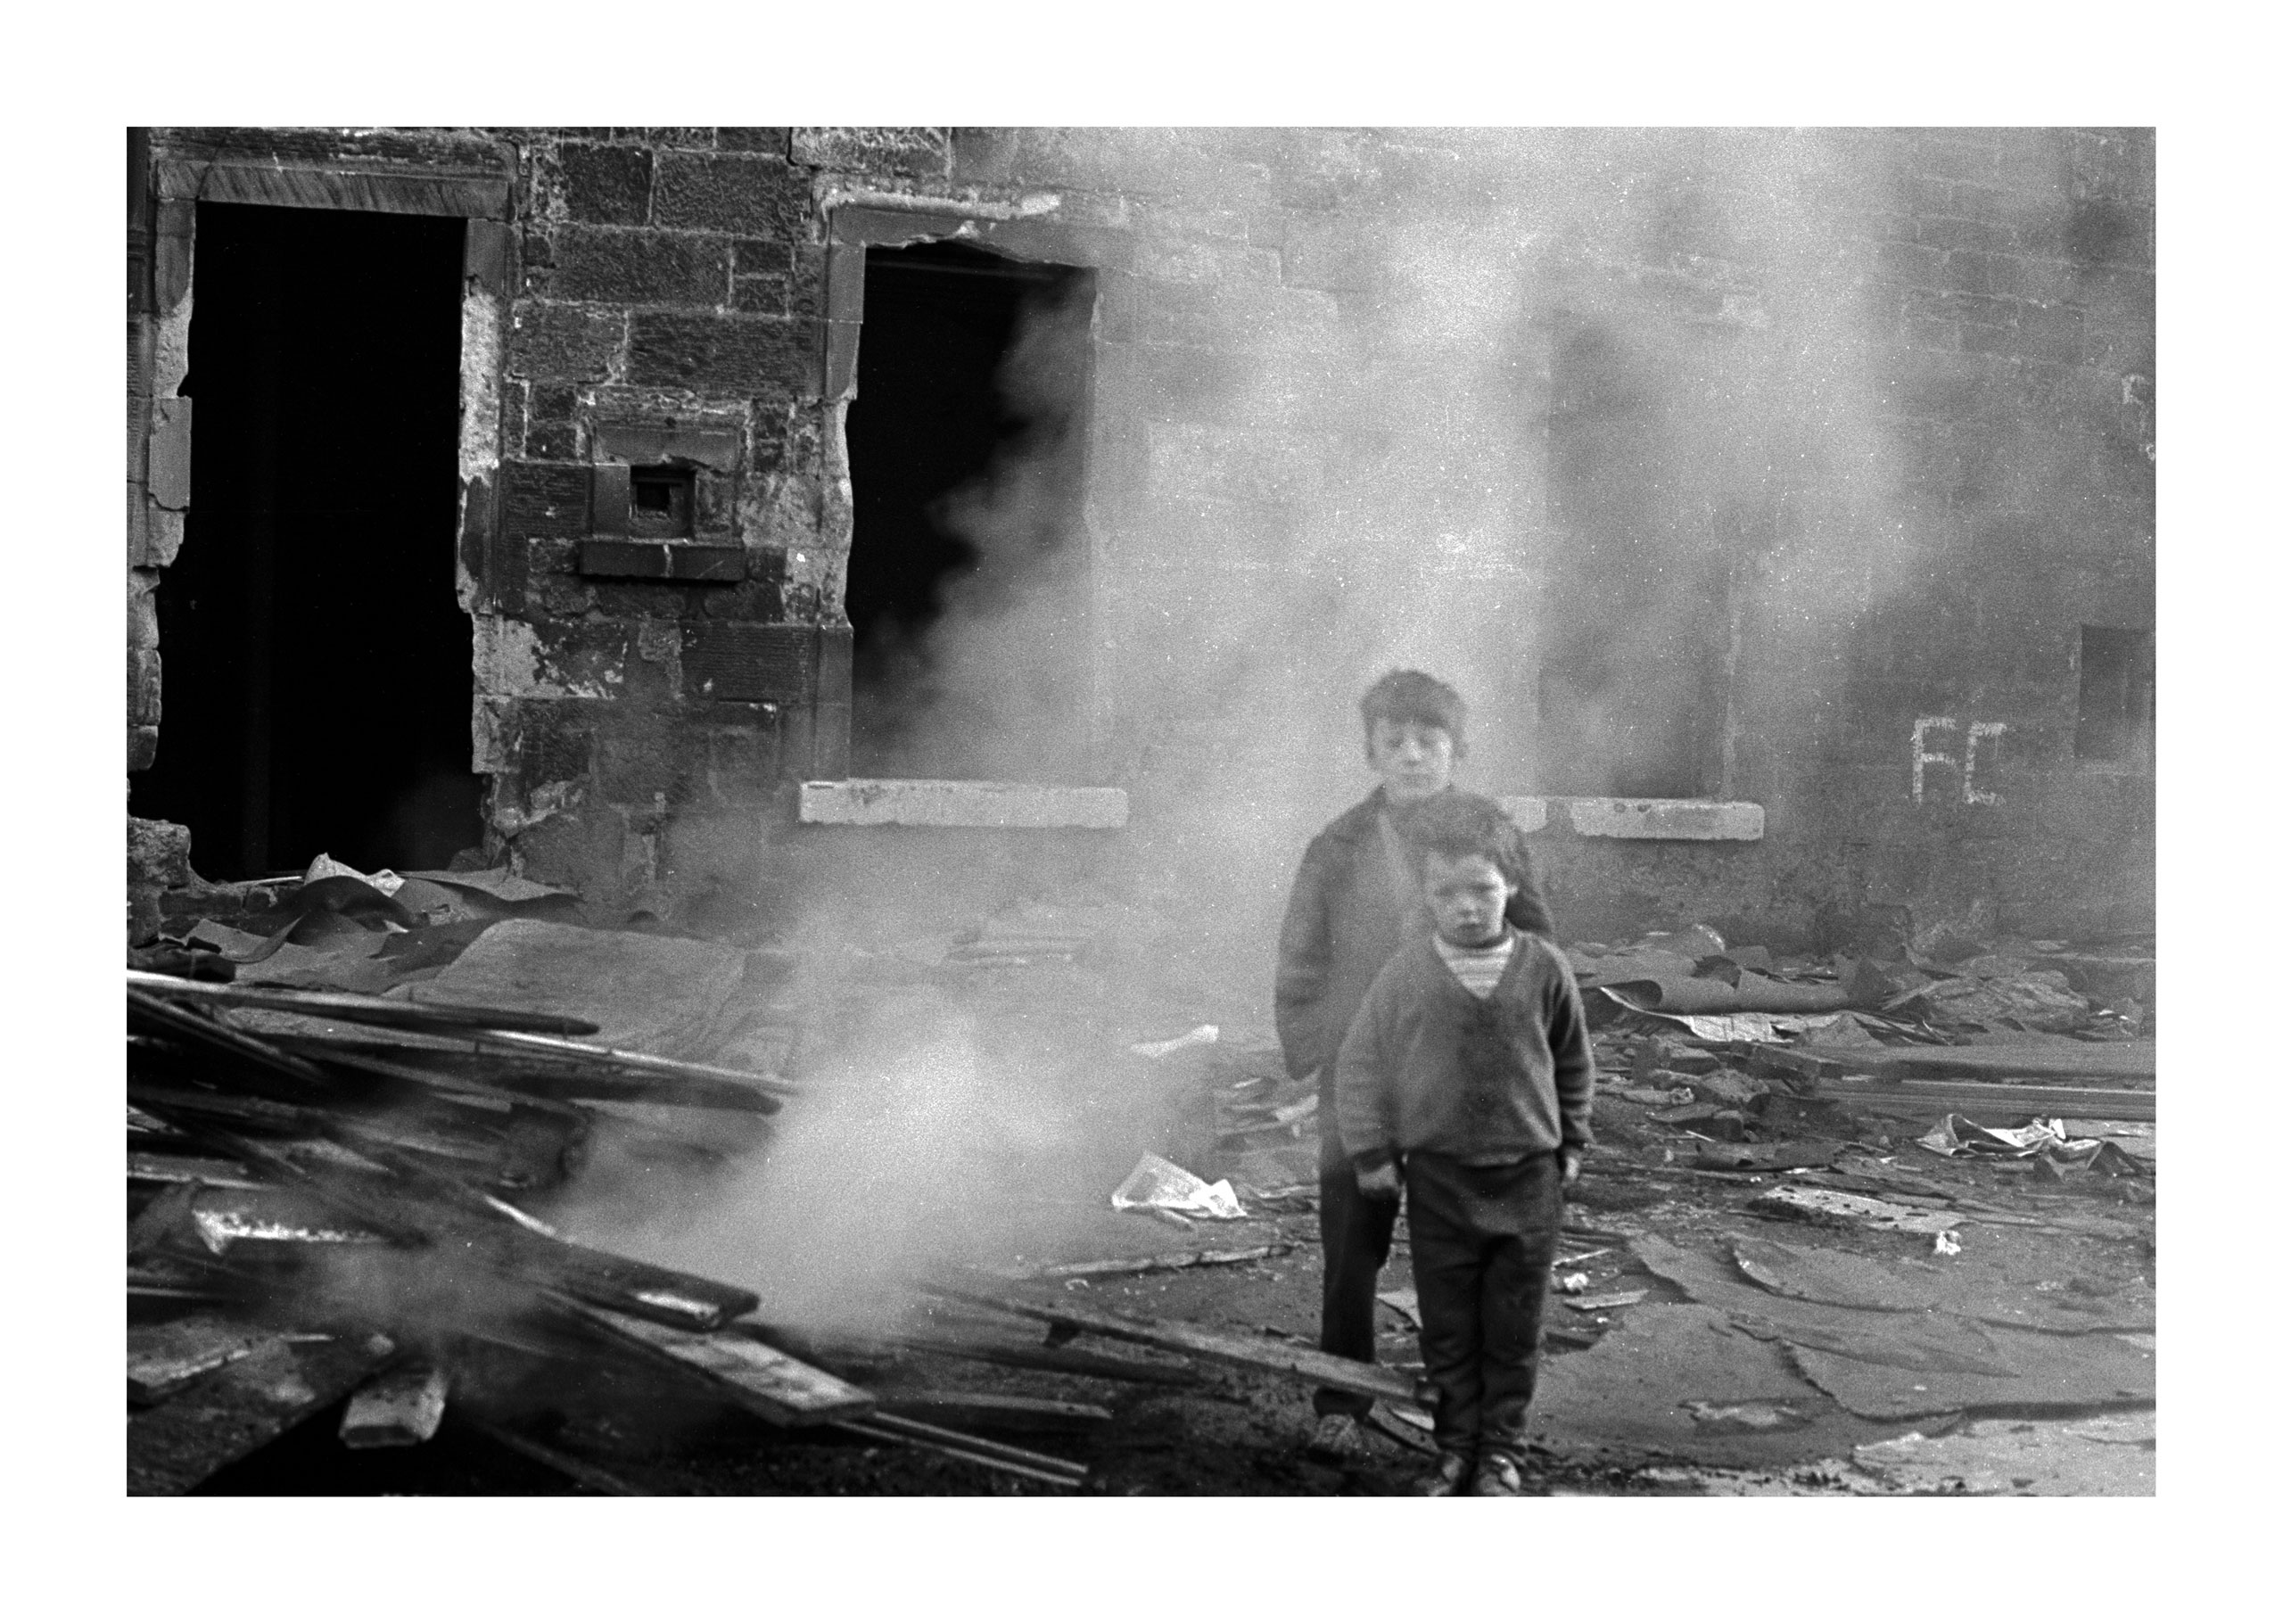 Image of  Untitled, from 'Glasgow 1974' (Two Young Boys in Smoke) by Hugh Hood